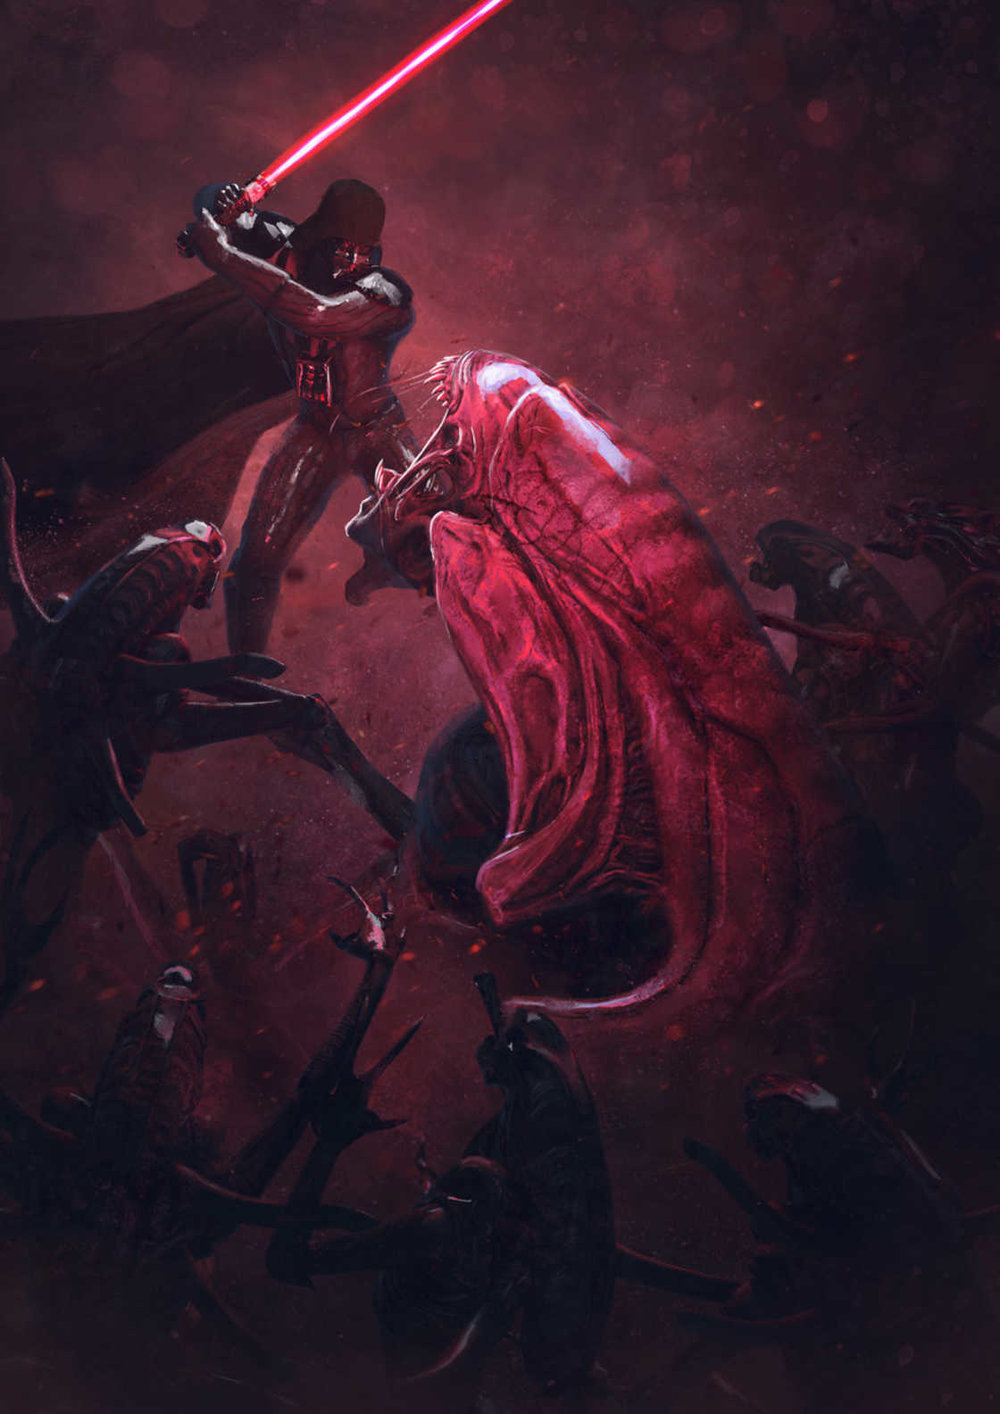 darth vader vs xenomorph in gloriously badass star wars and